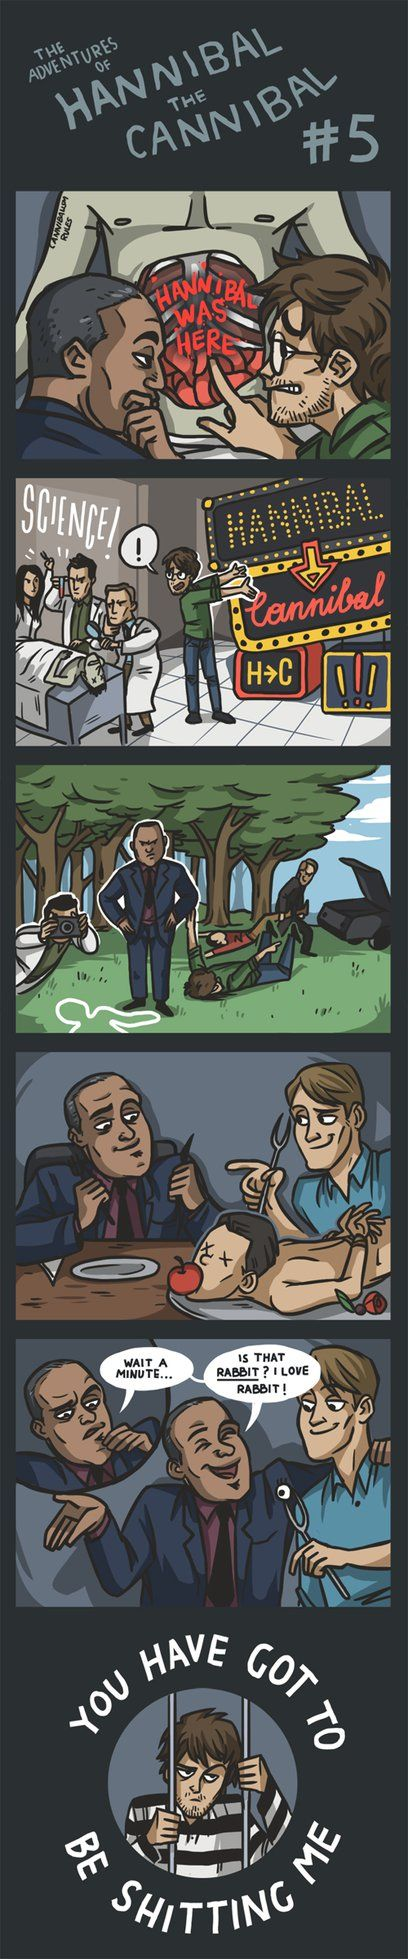 The Adventures of Hannibal the Cannibal #5 by ekzotik on deviantART E: Poor, poor, poor Will.